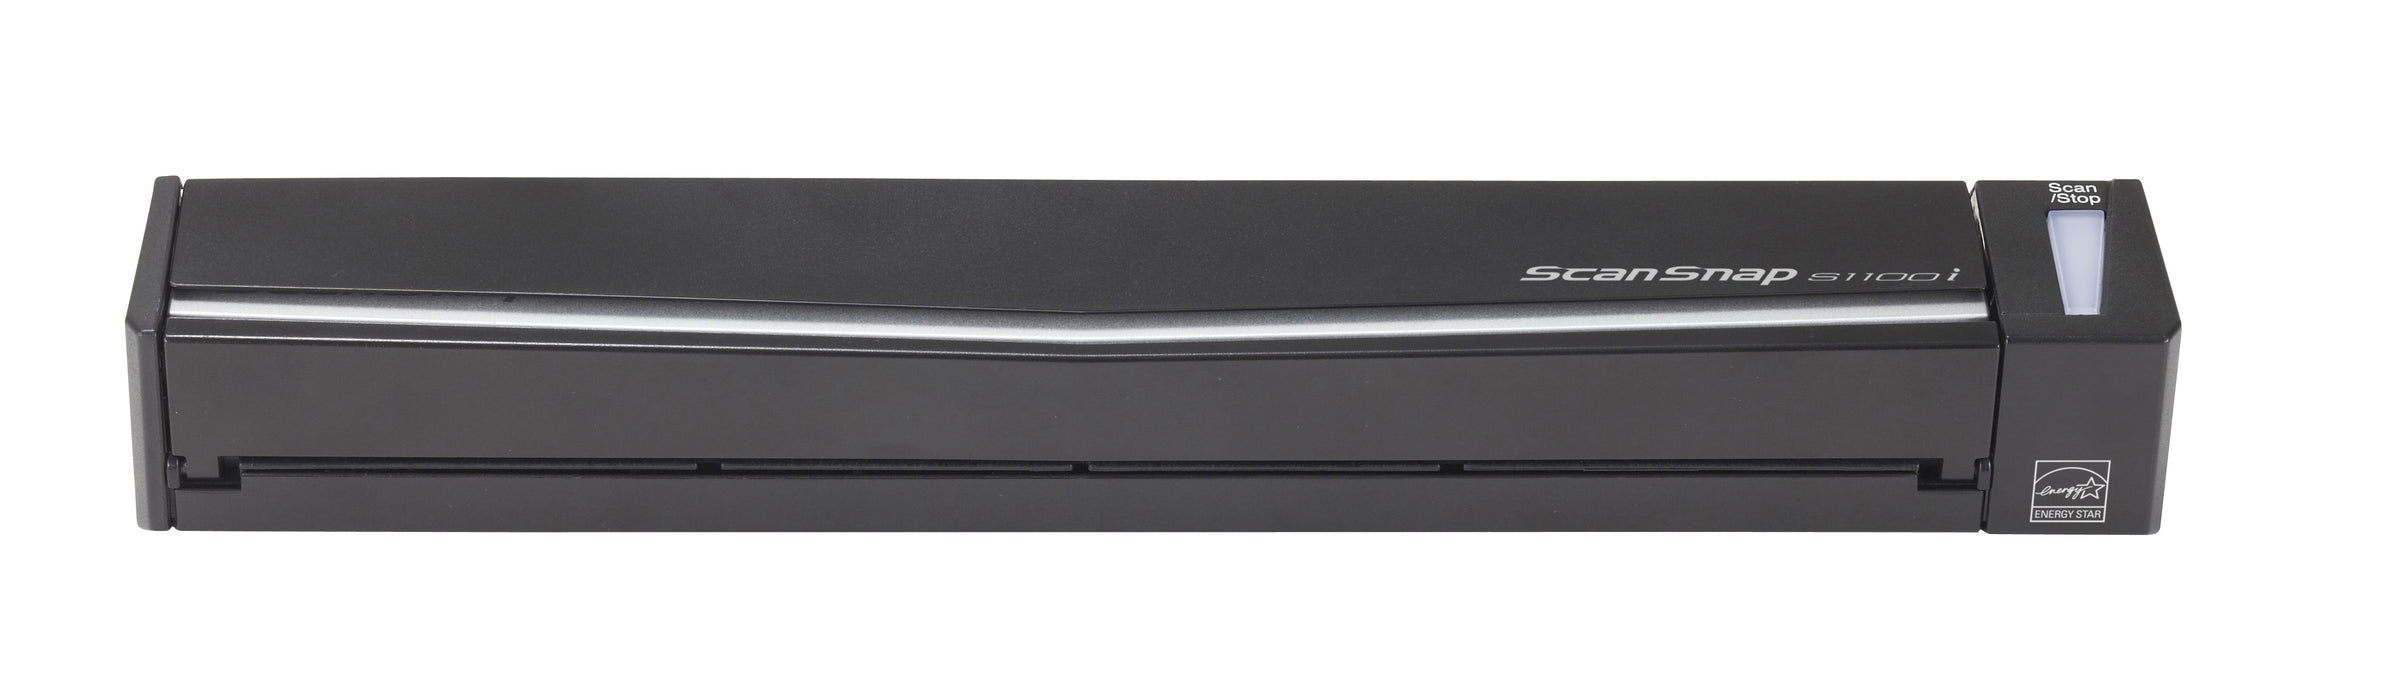 Fujitsu ScanSnap S1100i A4 Mobile Document Scanner